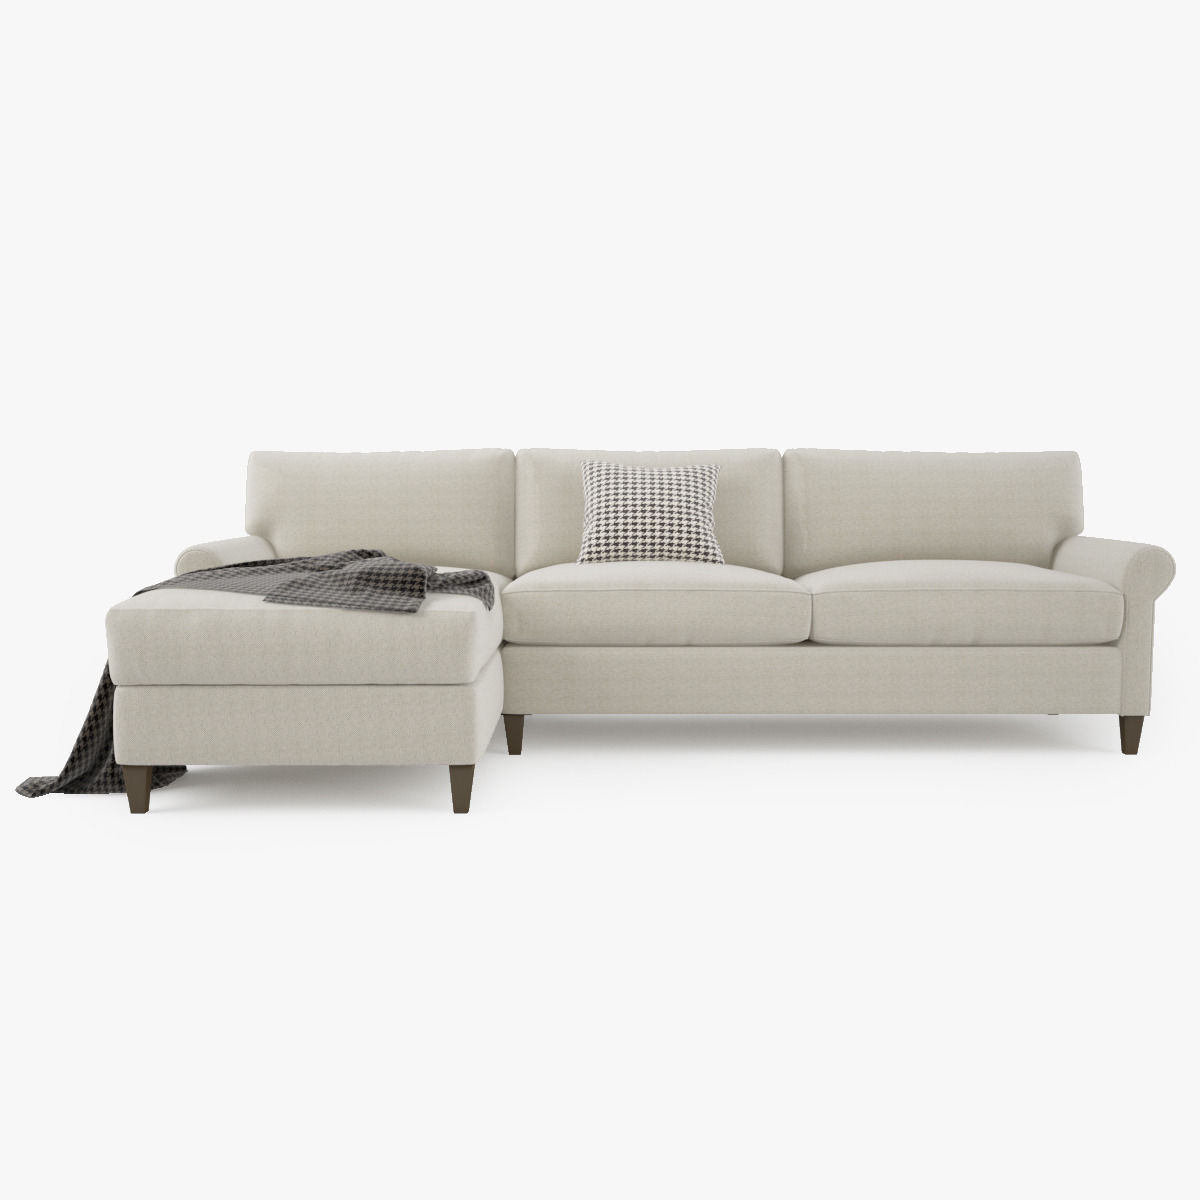 2 piece sectional sofa uno 2piece sectional sofa uno for Uno 2 piece sectional sofa